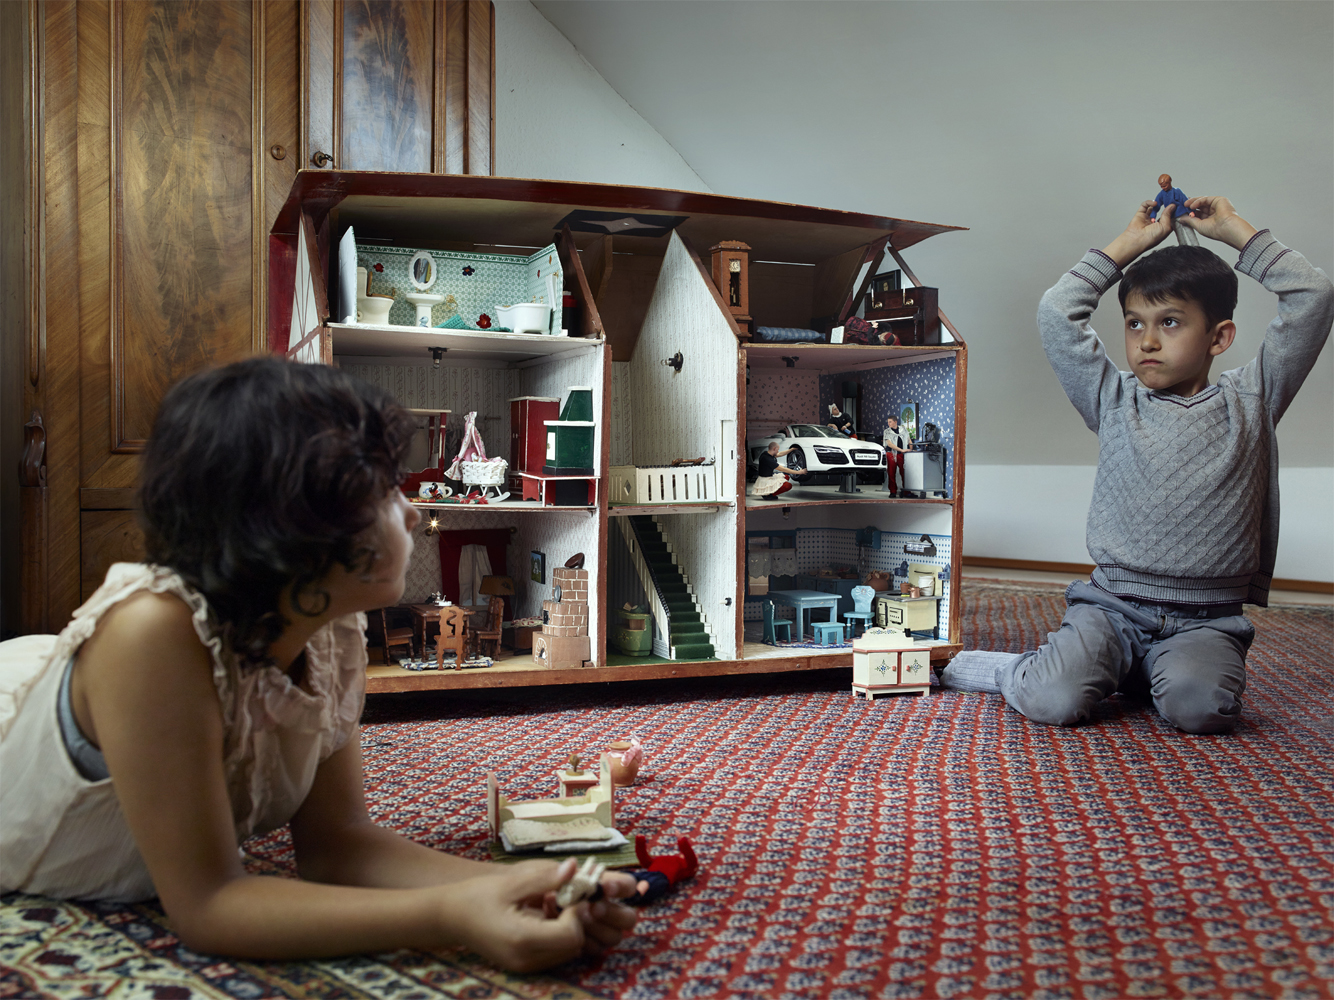 Boy and girl playing with dollhouse